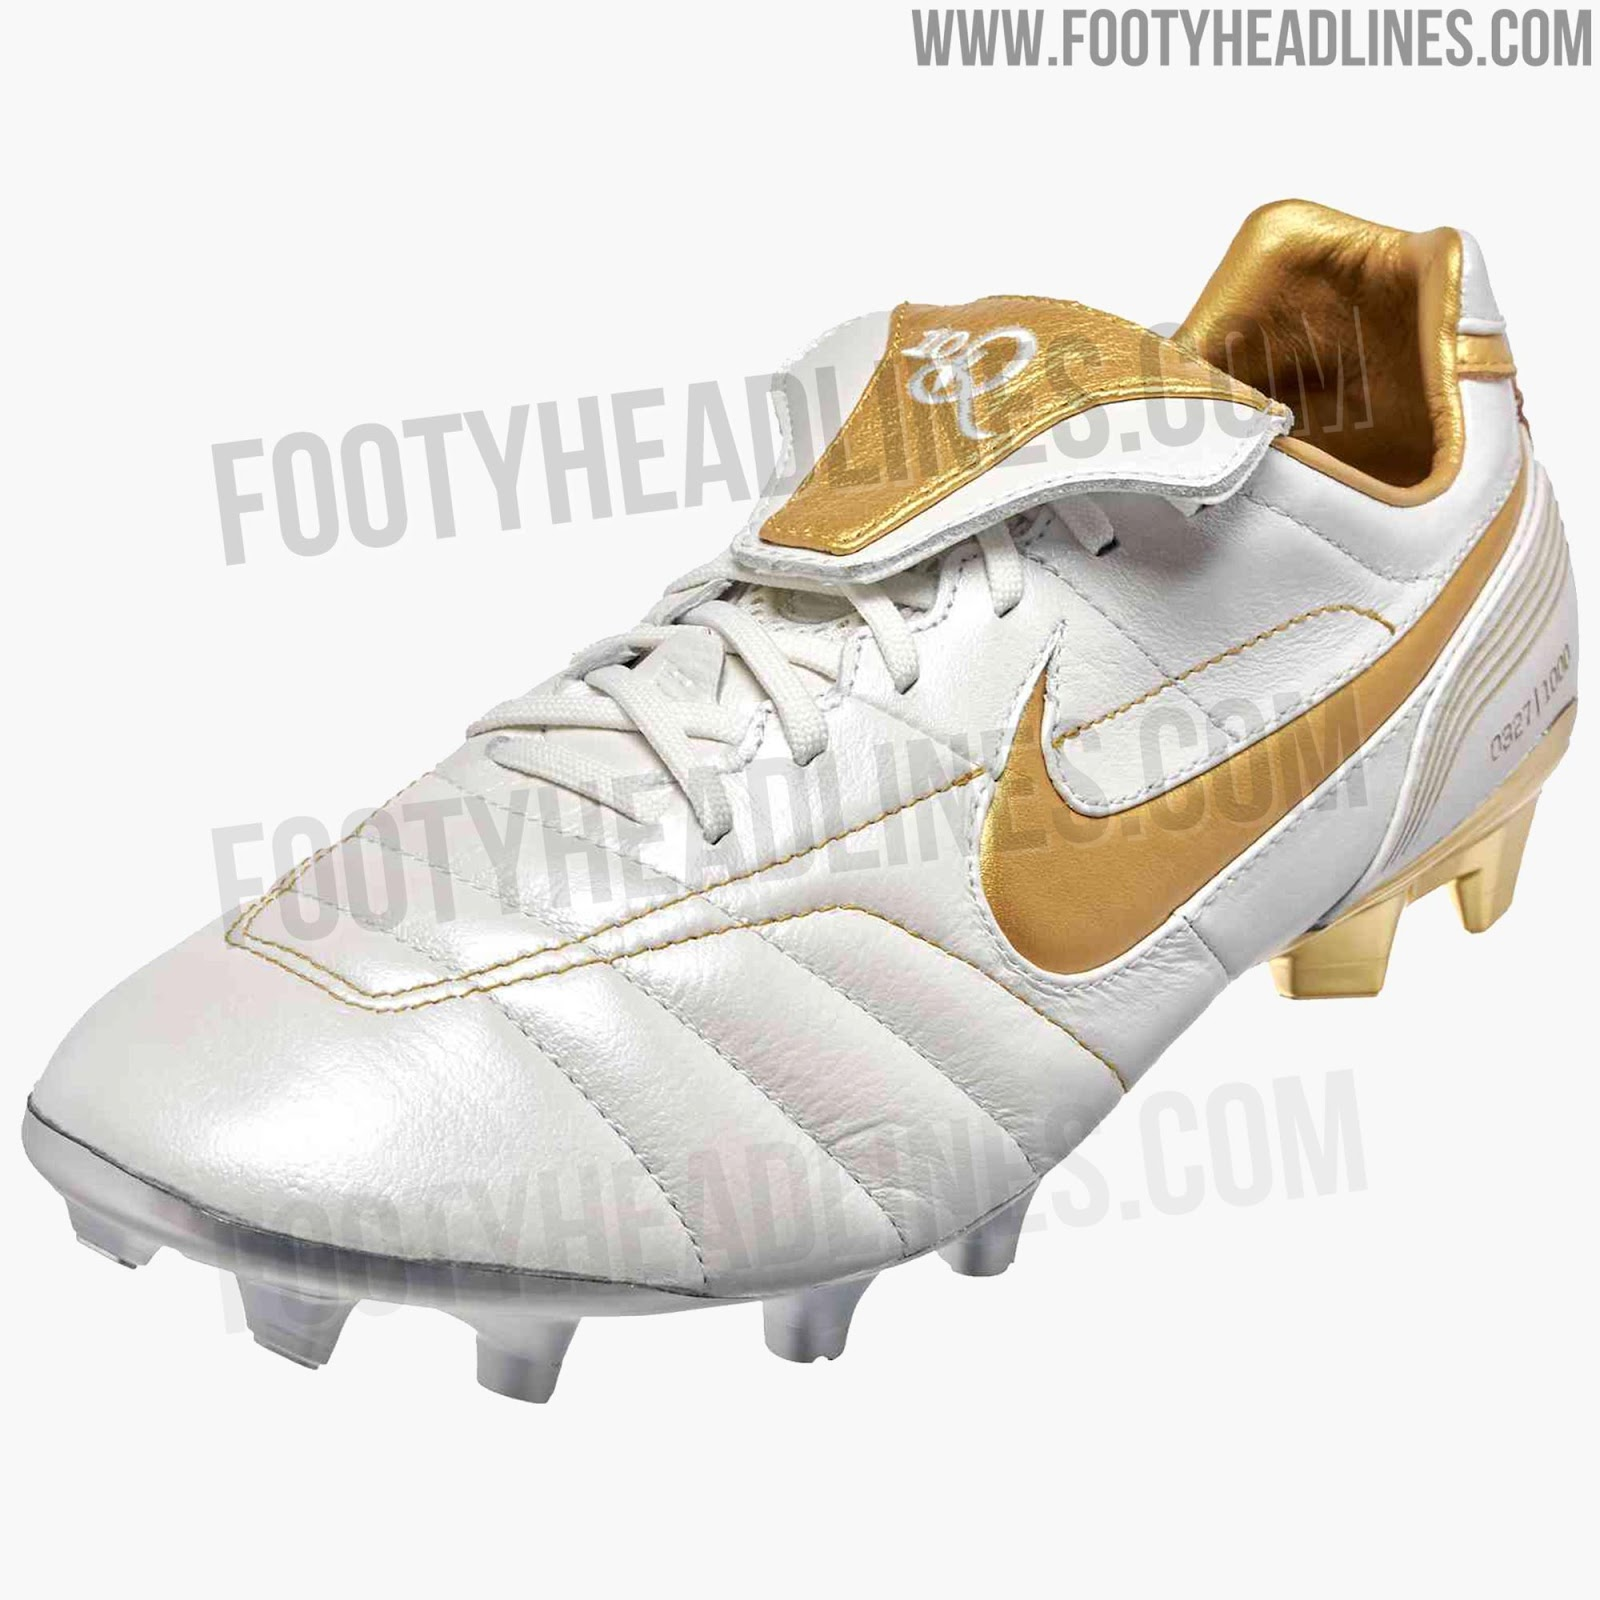 the latest 4012f c8d28 new arrivals nike tiempo legend ronaldinho boots released ...